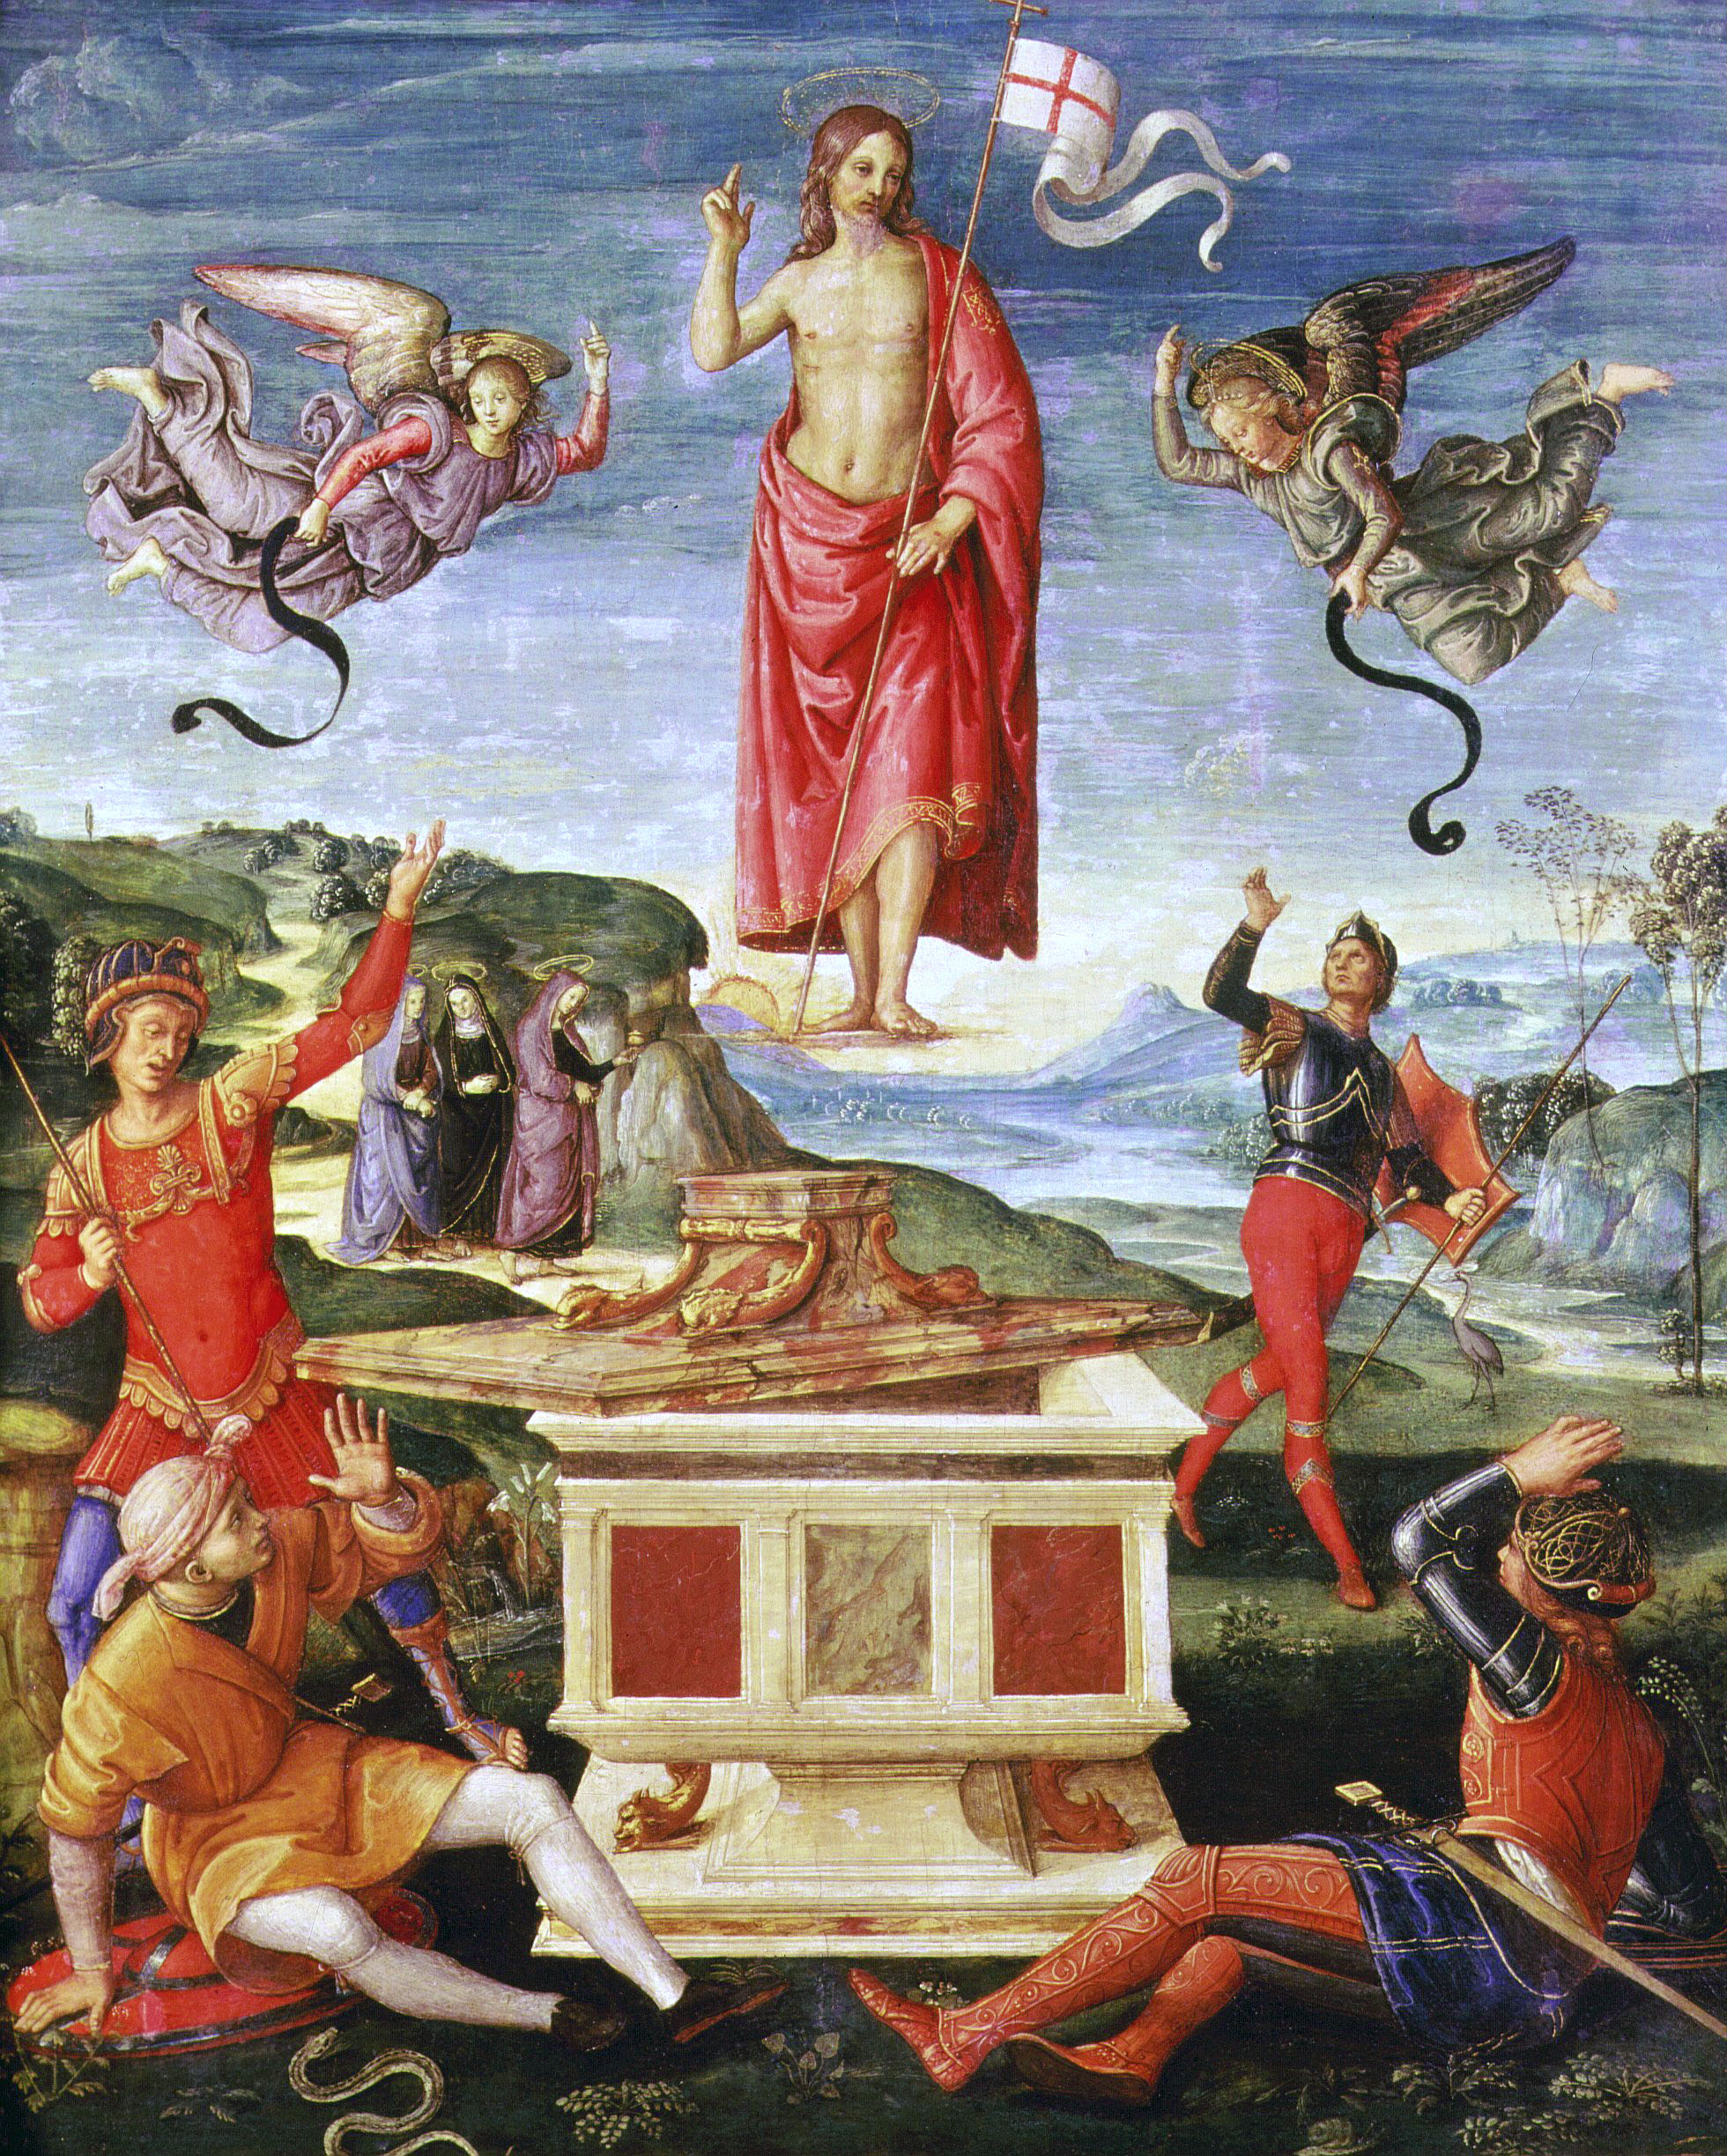 Fig. 2 Raphael, The Resurrection of Christ, ca. 1502